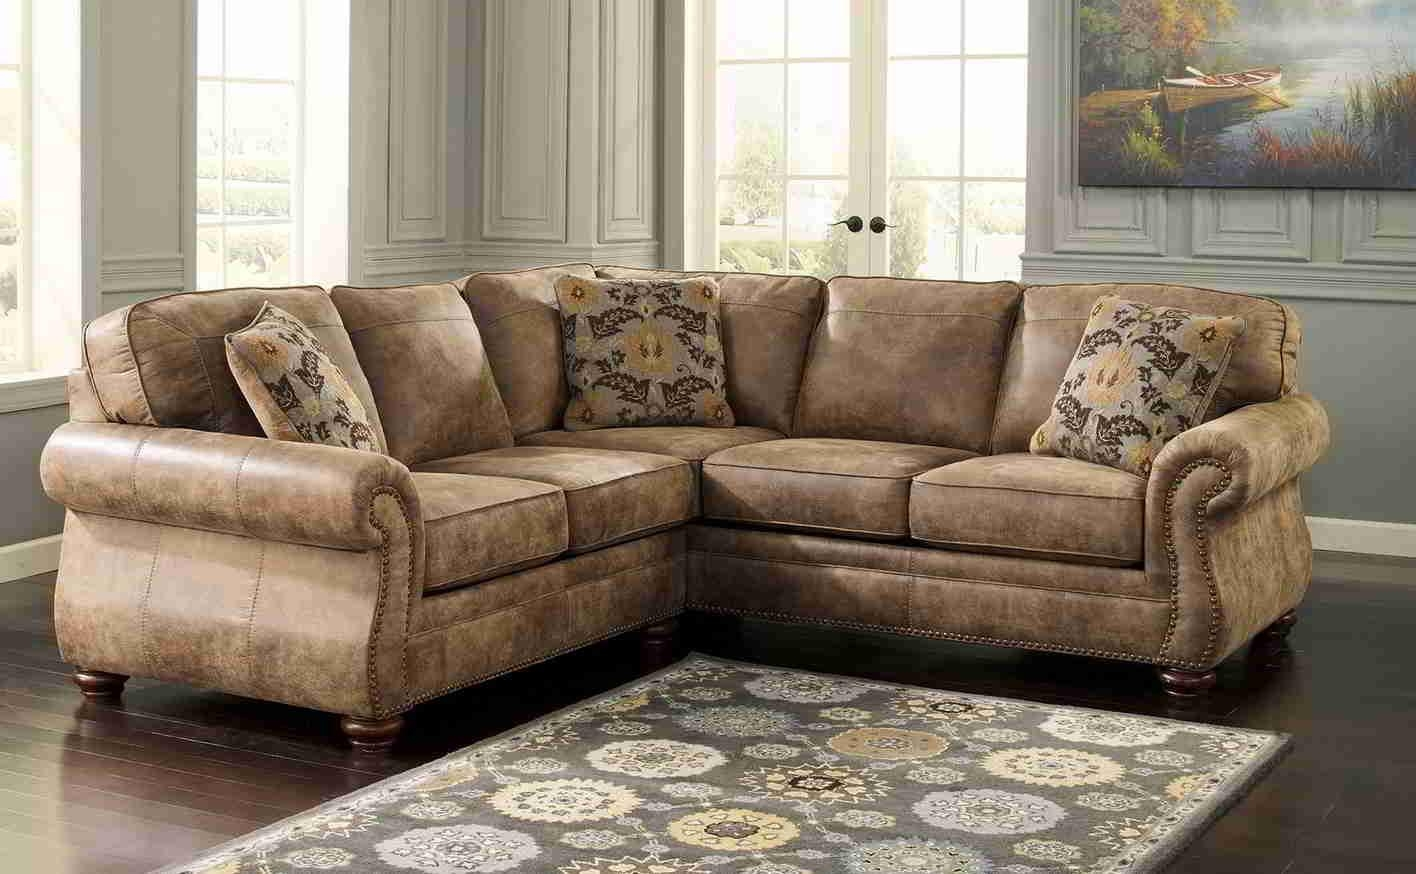 wide sofa sectionals hot pink 20 photos seat sectional sofas ideas